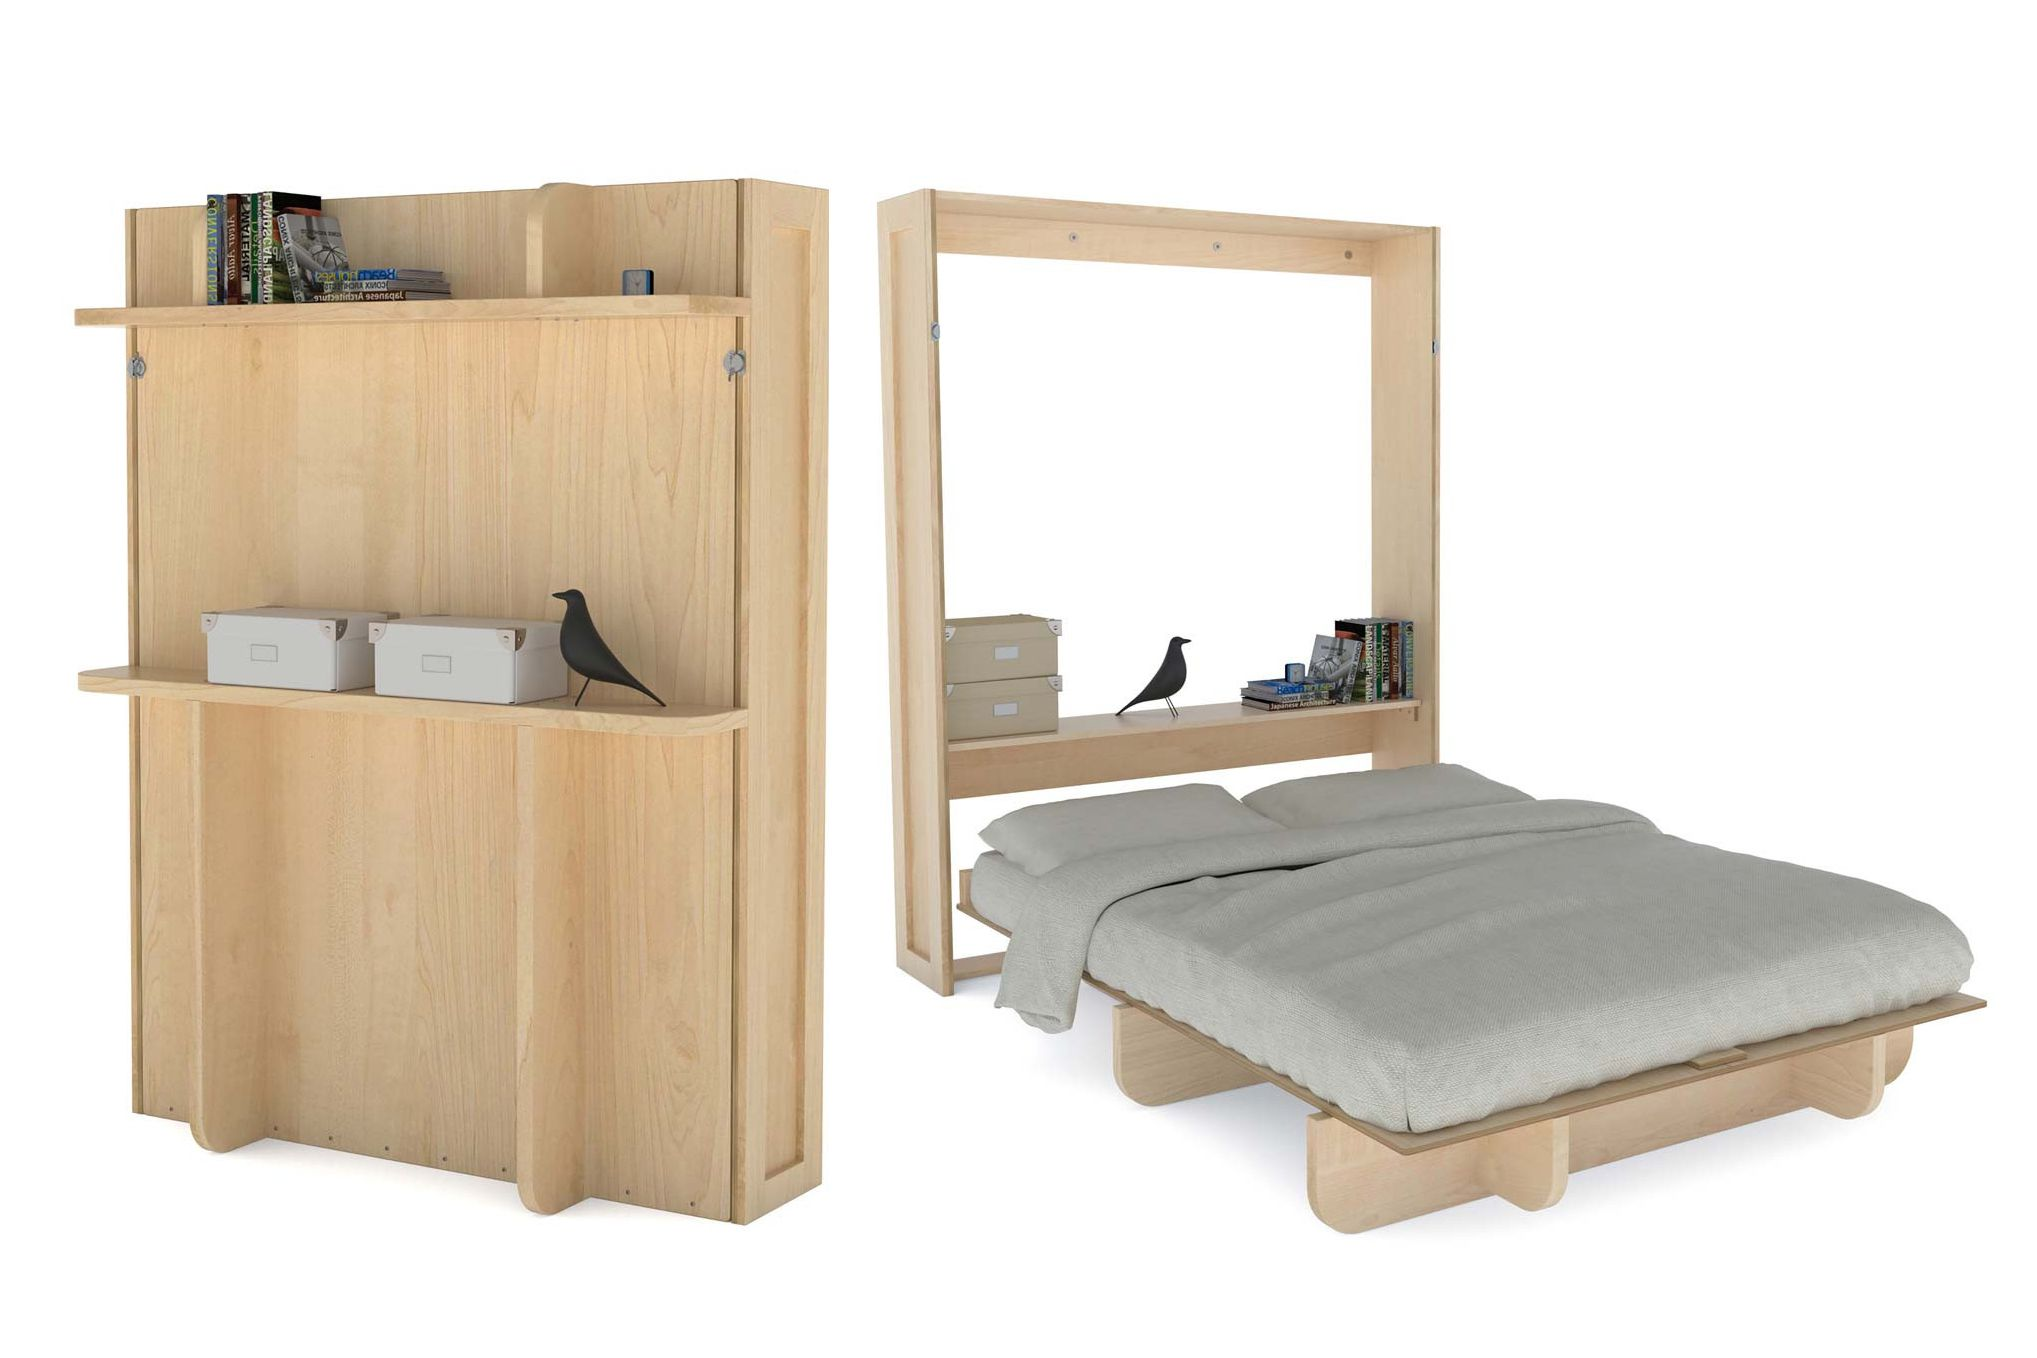 12 diy murphy bed projects for every budget amipublicfo Choice Image